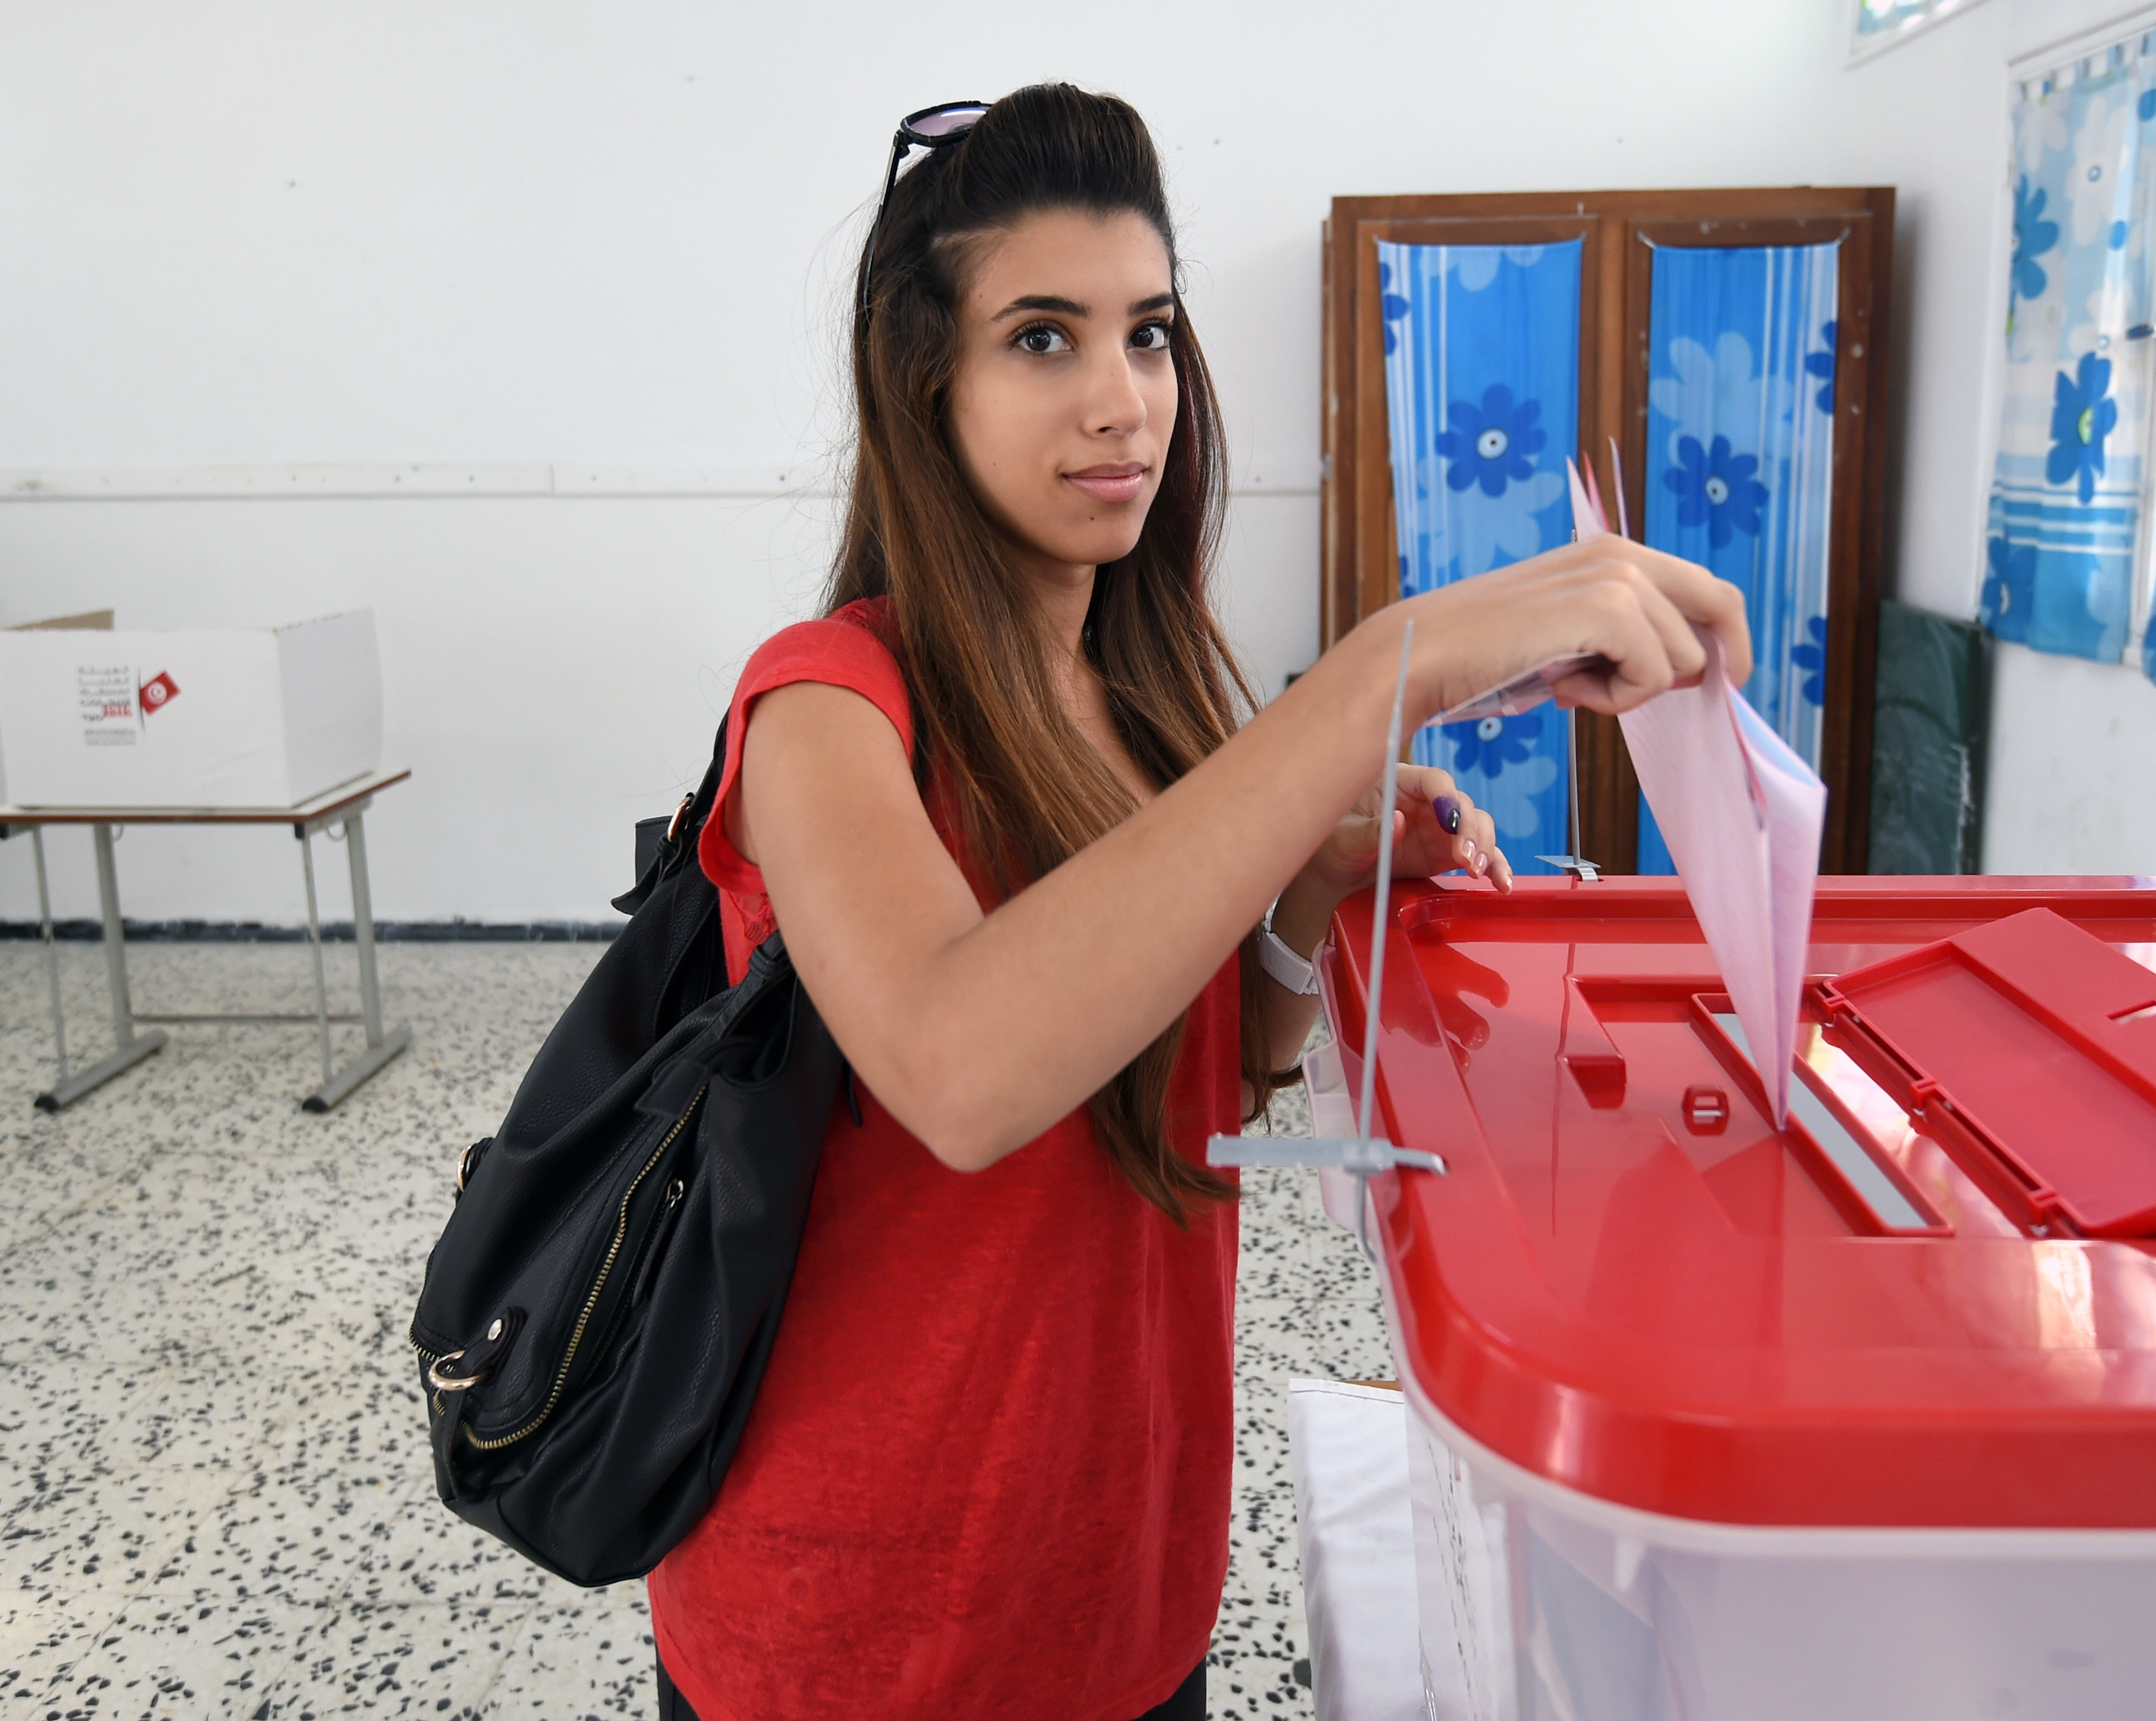 A Tunisian woman casts her vote in the country's first post-revolution parliamentary election on October 26, 2014 at El-Manzeh VI School turned into a polling station in the Tunis suburb of Ariana. Tunisians were voting in an election seen as pivotal to establishing democracy in the cradle of the Arab Spring uprisings, with security forces deploying heavily to avert extremist attacks. AFP PHOTO /  FETHI BELAID        (Photo credit should read FETHI BELAID/AFP/Getty Images)